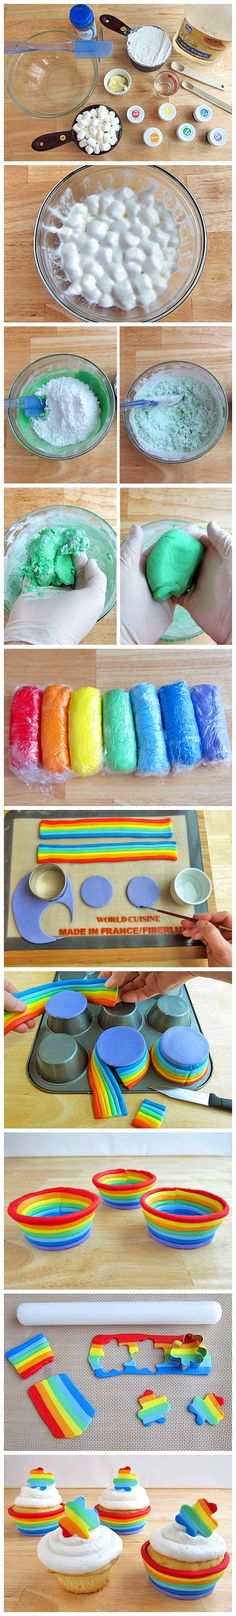 Hmmm...edible play dough?